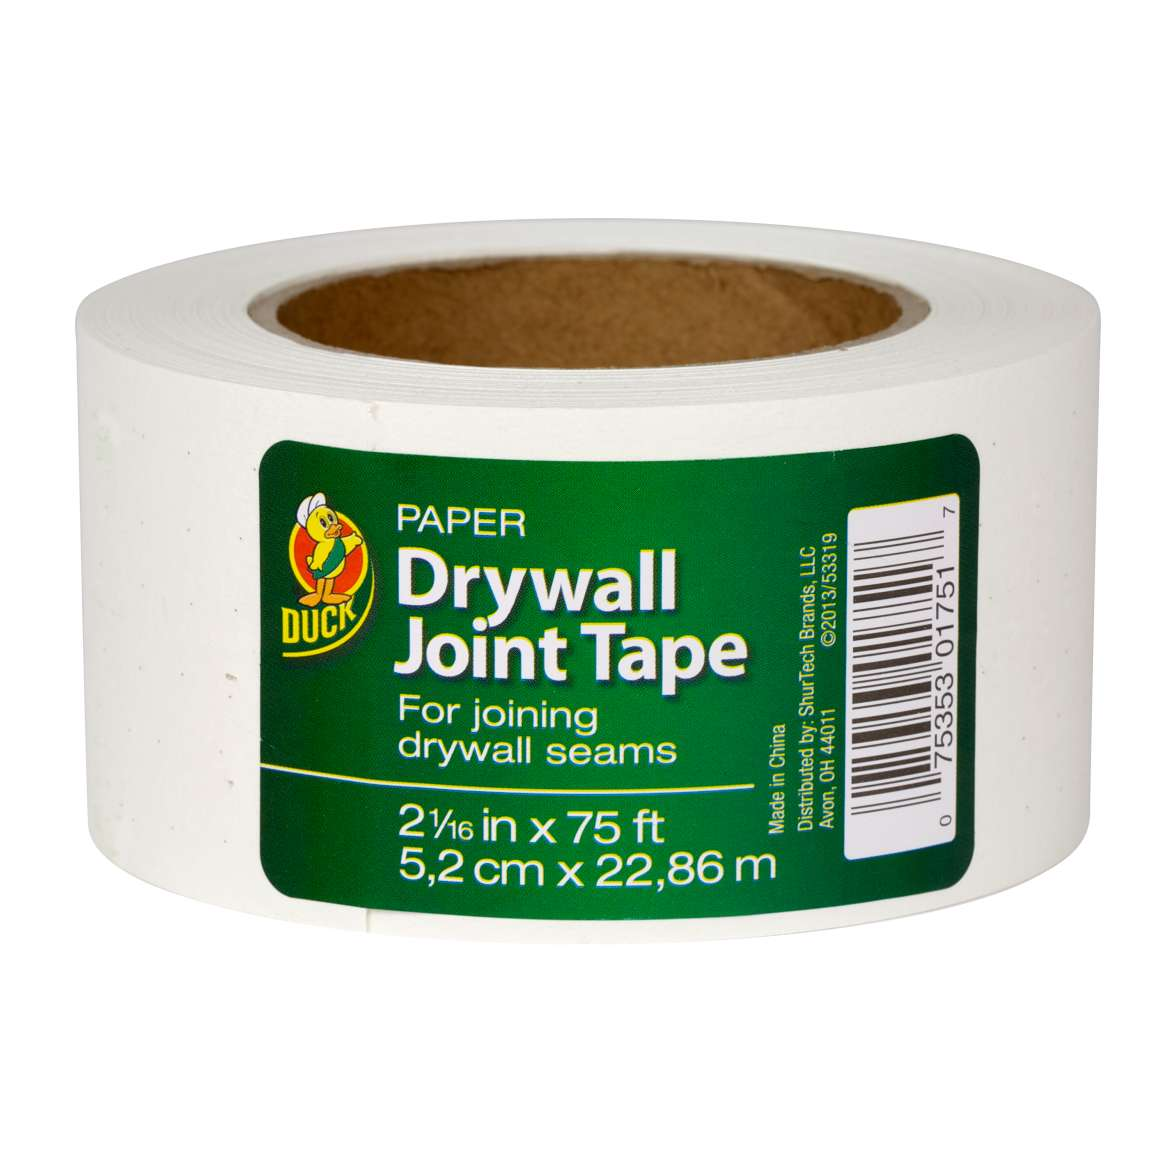 Duck® Brand Paper Drywall Joint Tape, 2.06 in. x 75 ft. Image